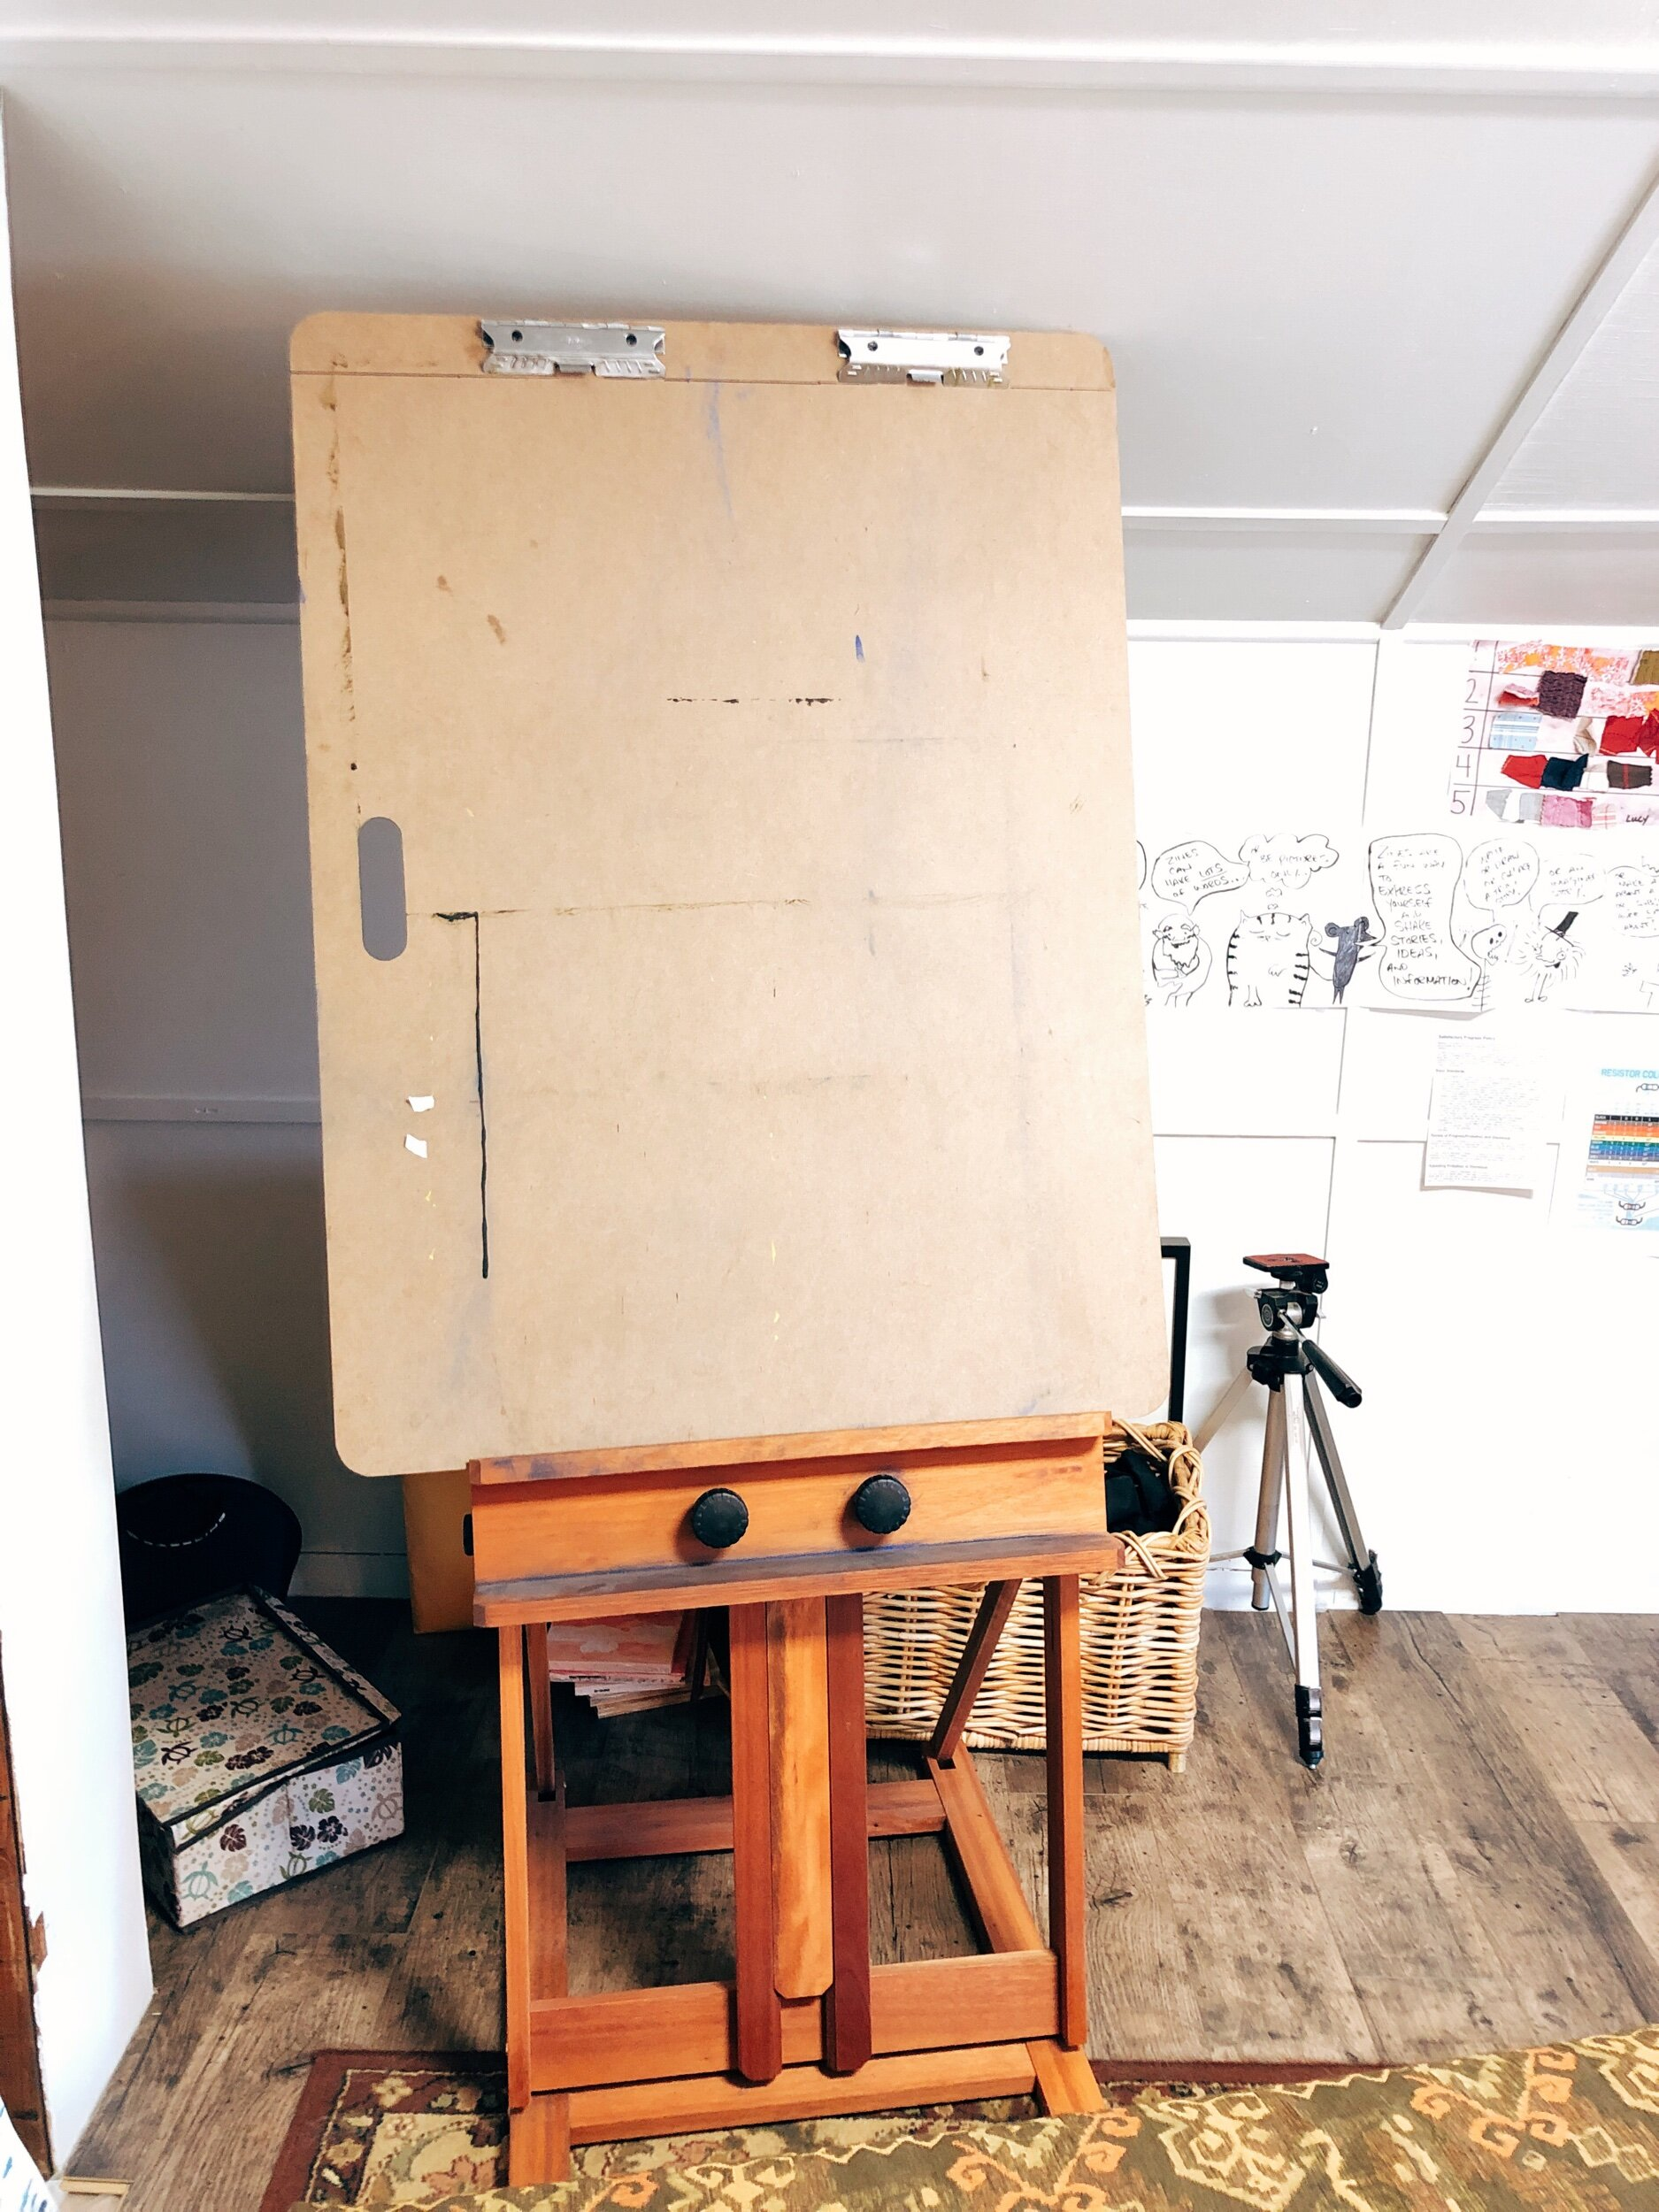 I love my easel. Here's what it looks like.